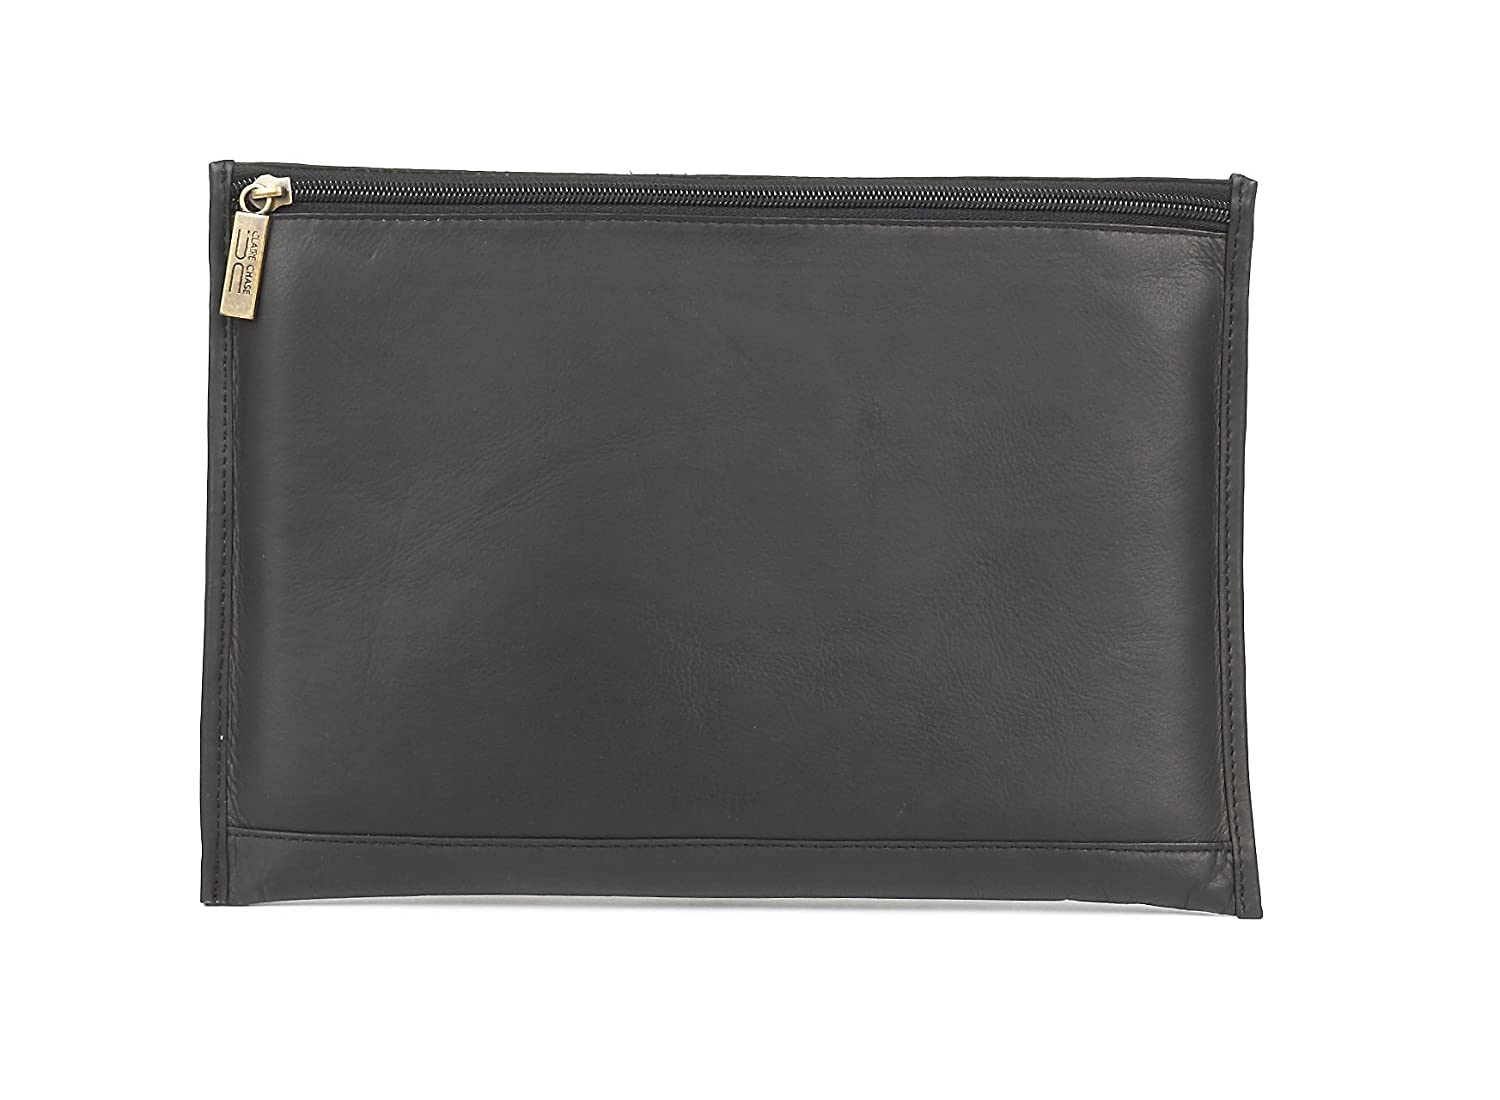 Claire Chase I-Pouch Black One Size IP-300